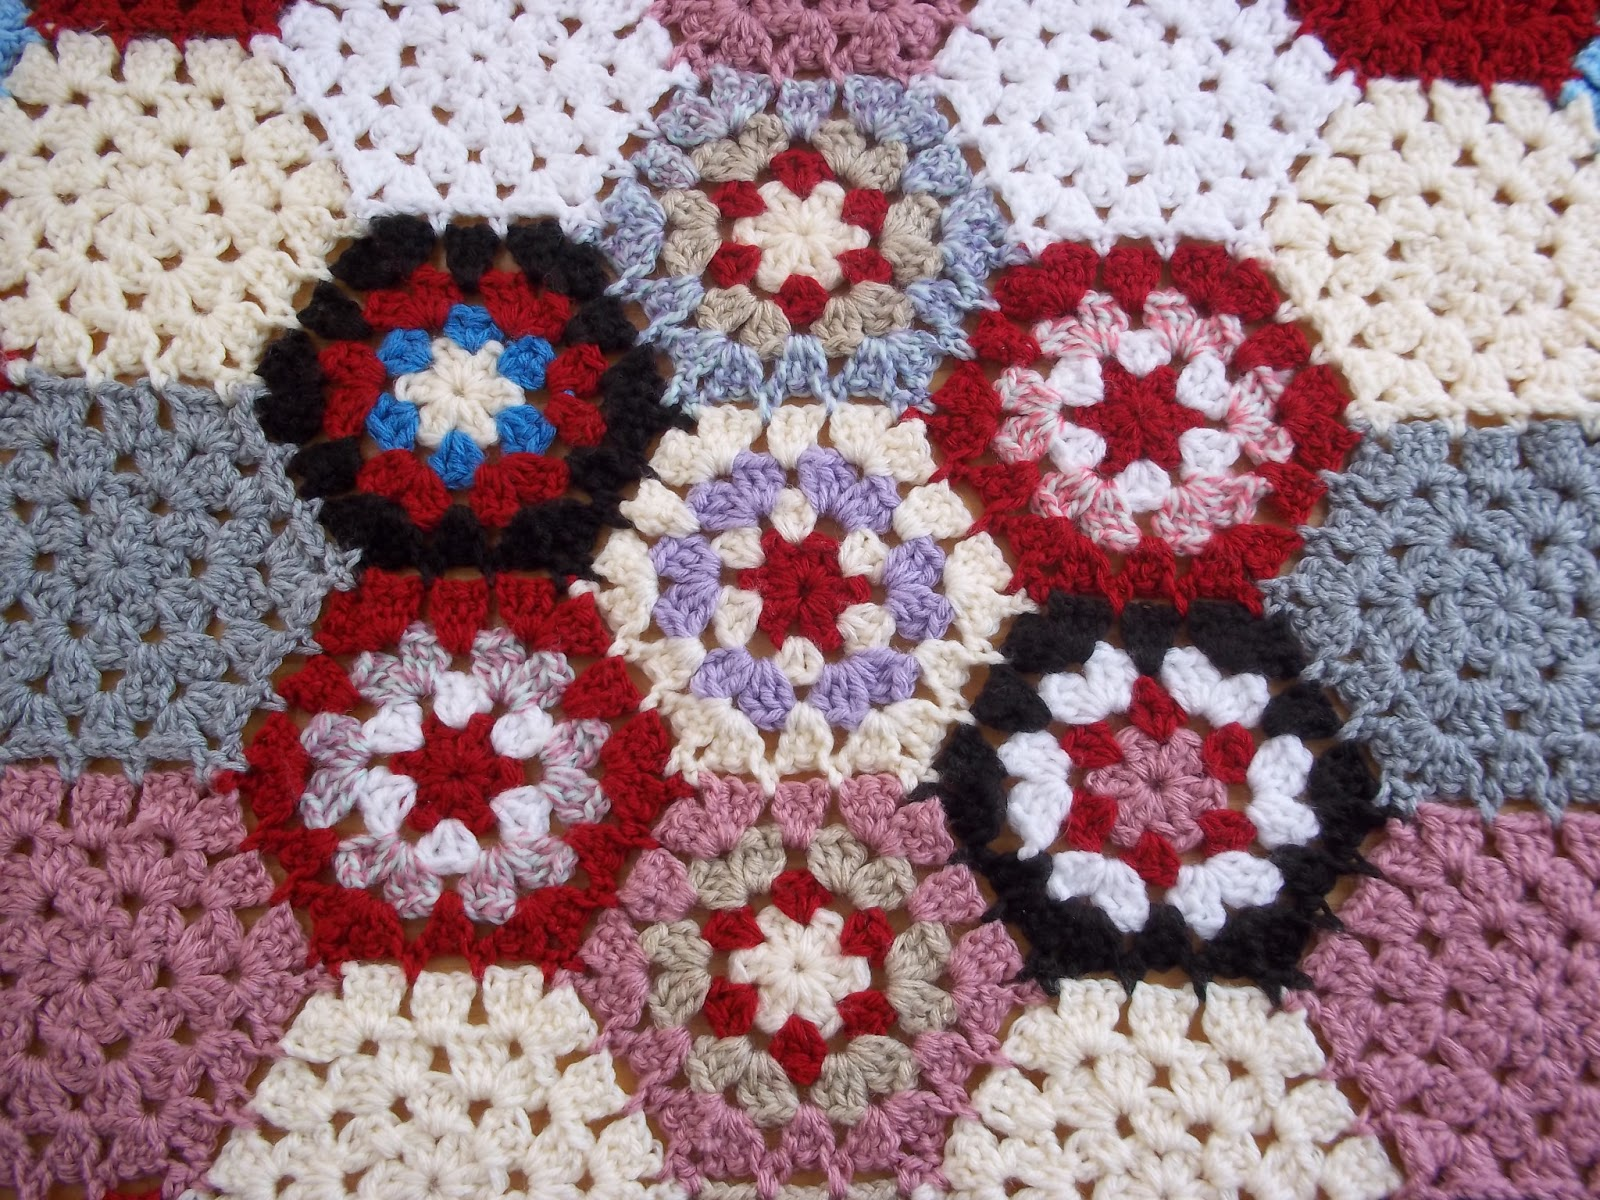 Crocheting Hexagons : Hexagon Crochet Motif #1 - Afghan